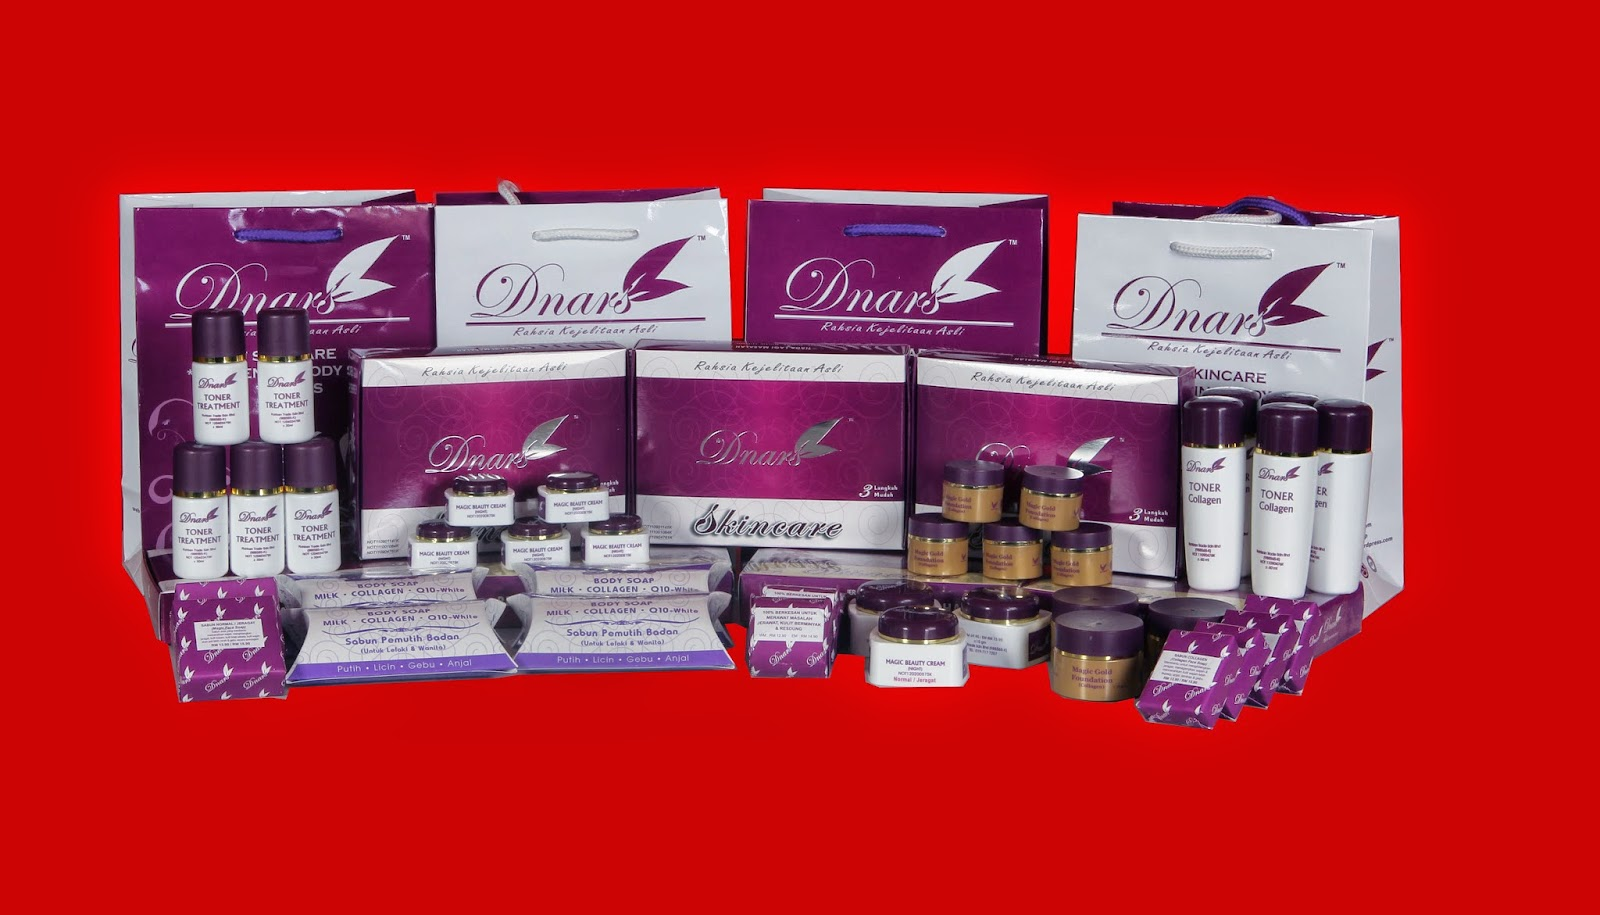 DNARS SKINCARE - murahcheaponline I CANTIKBEAUTYMALL